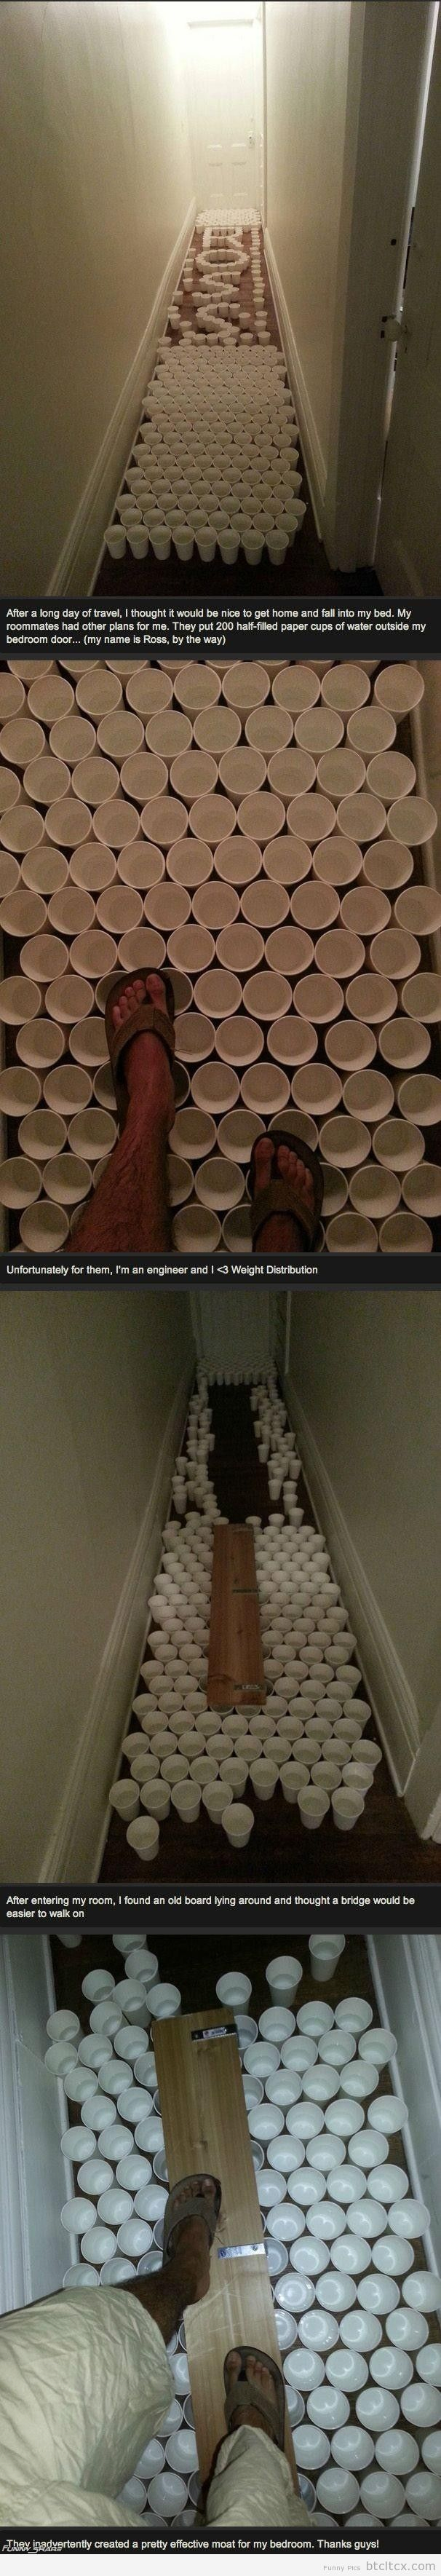 out engineering the roomates | Funny Pictures